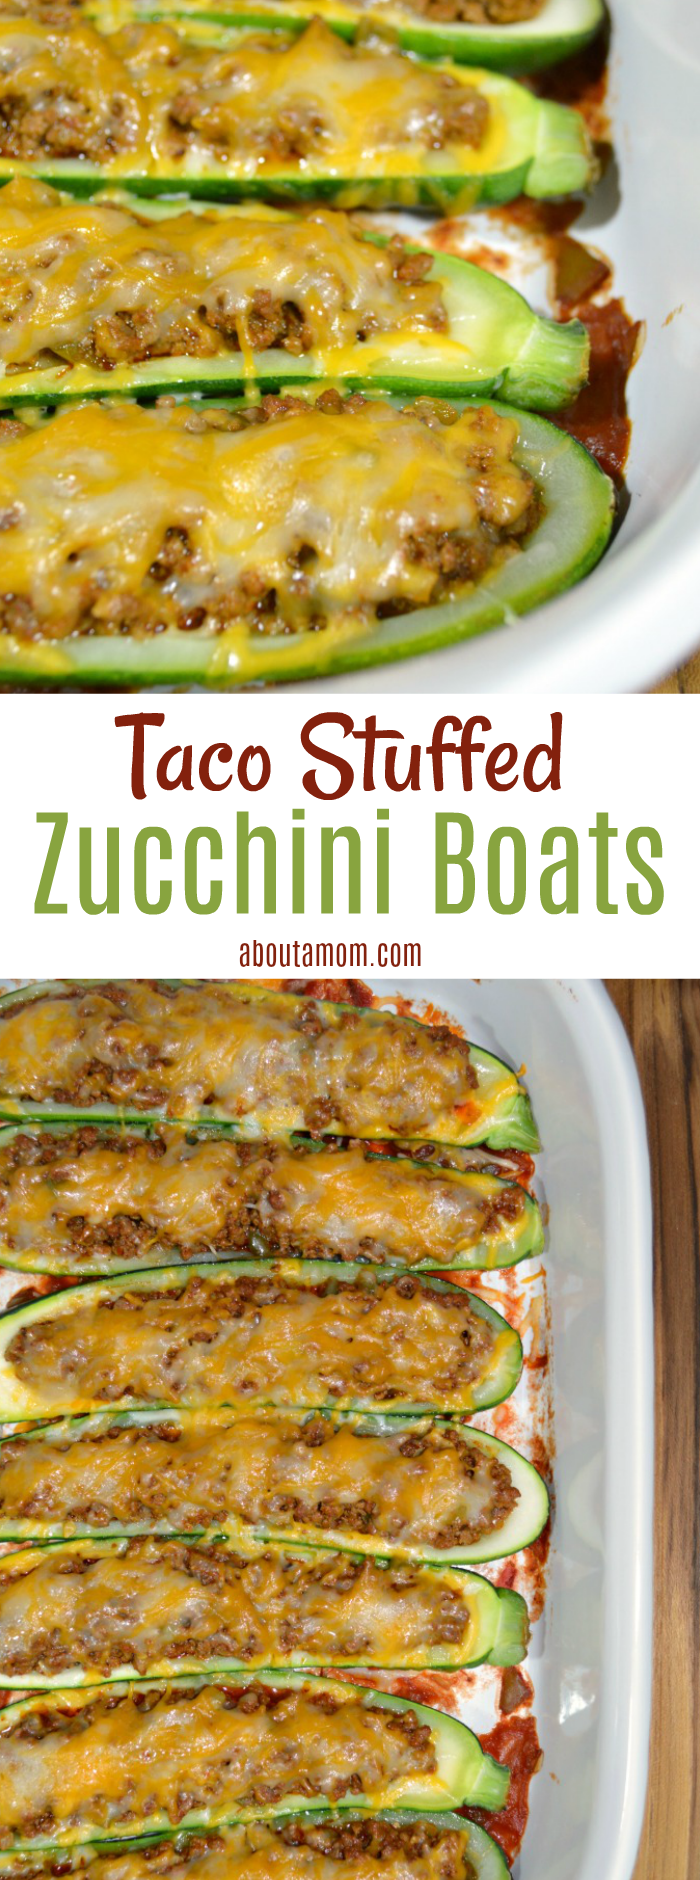 Taco Stuffed Zucchini Boats are a great way to enjoy tacos without tortillas. It is a delicious low carb recipe.